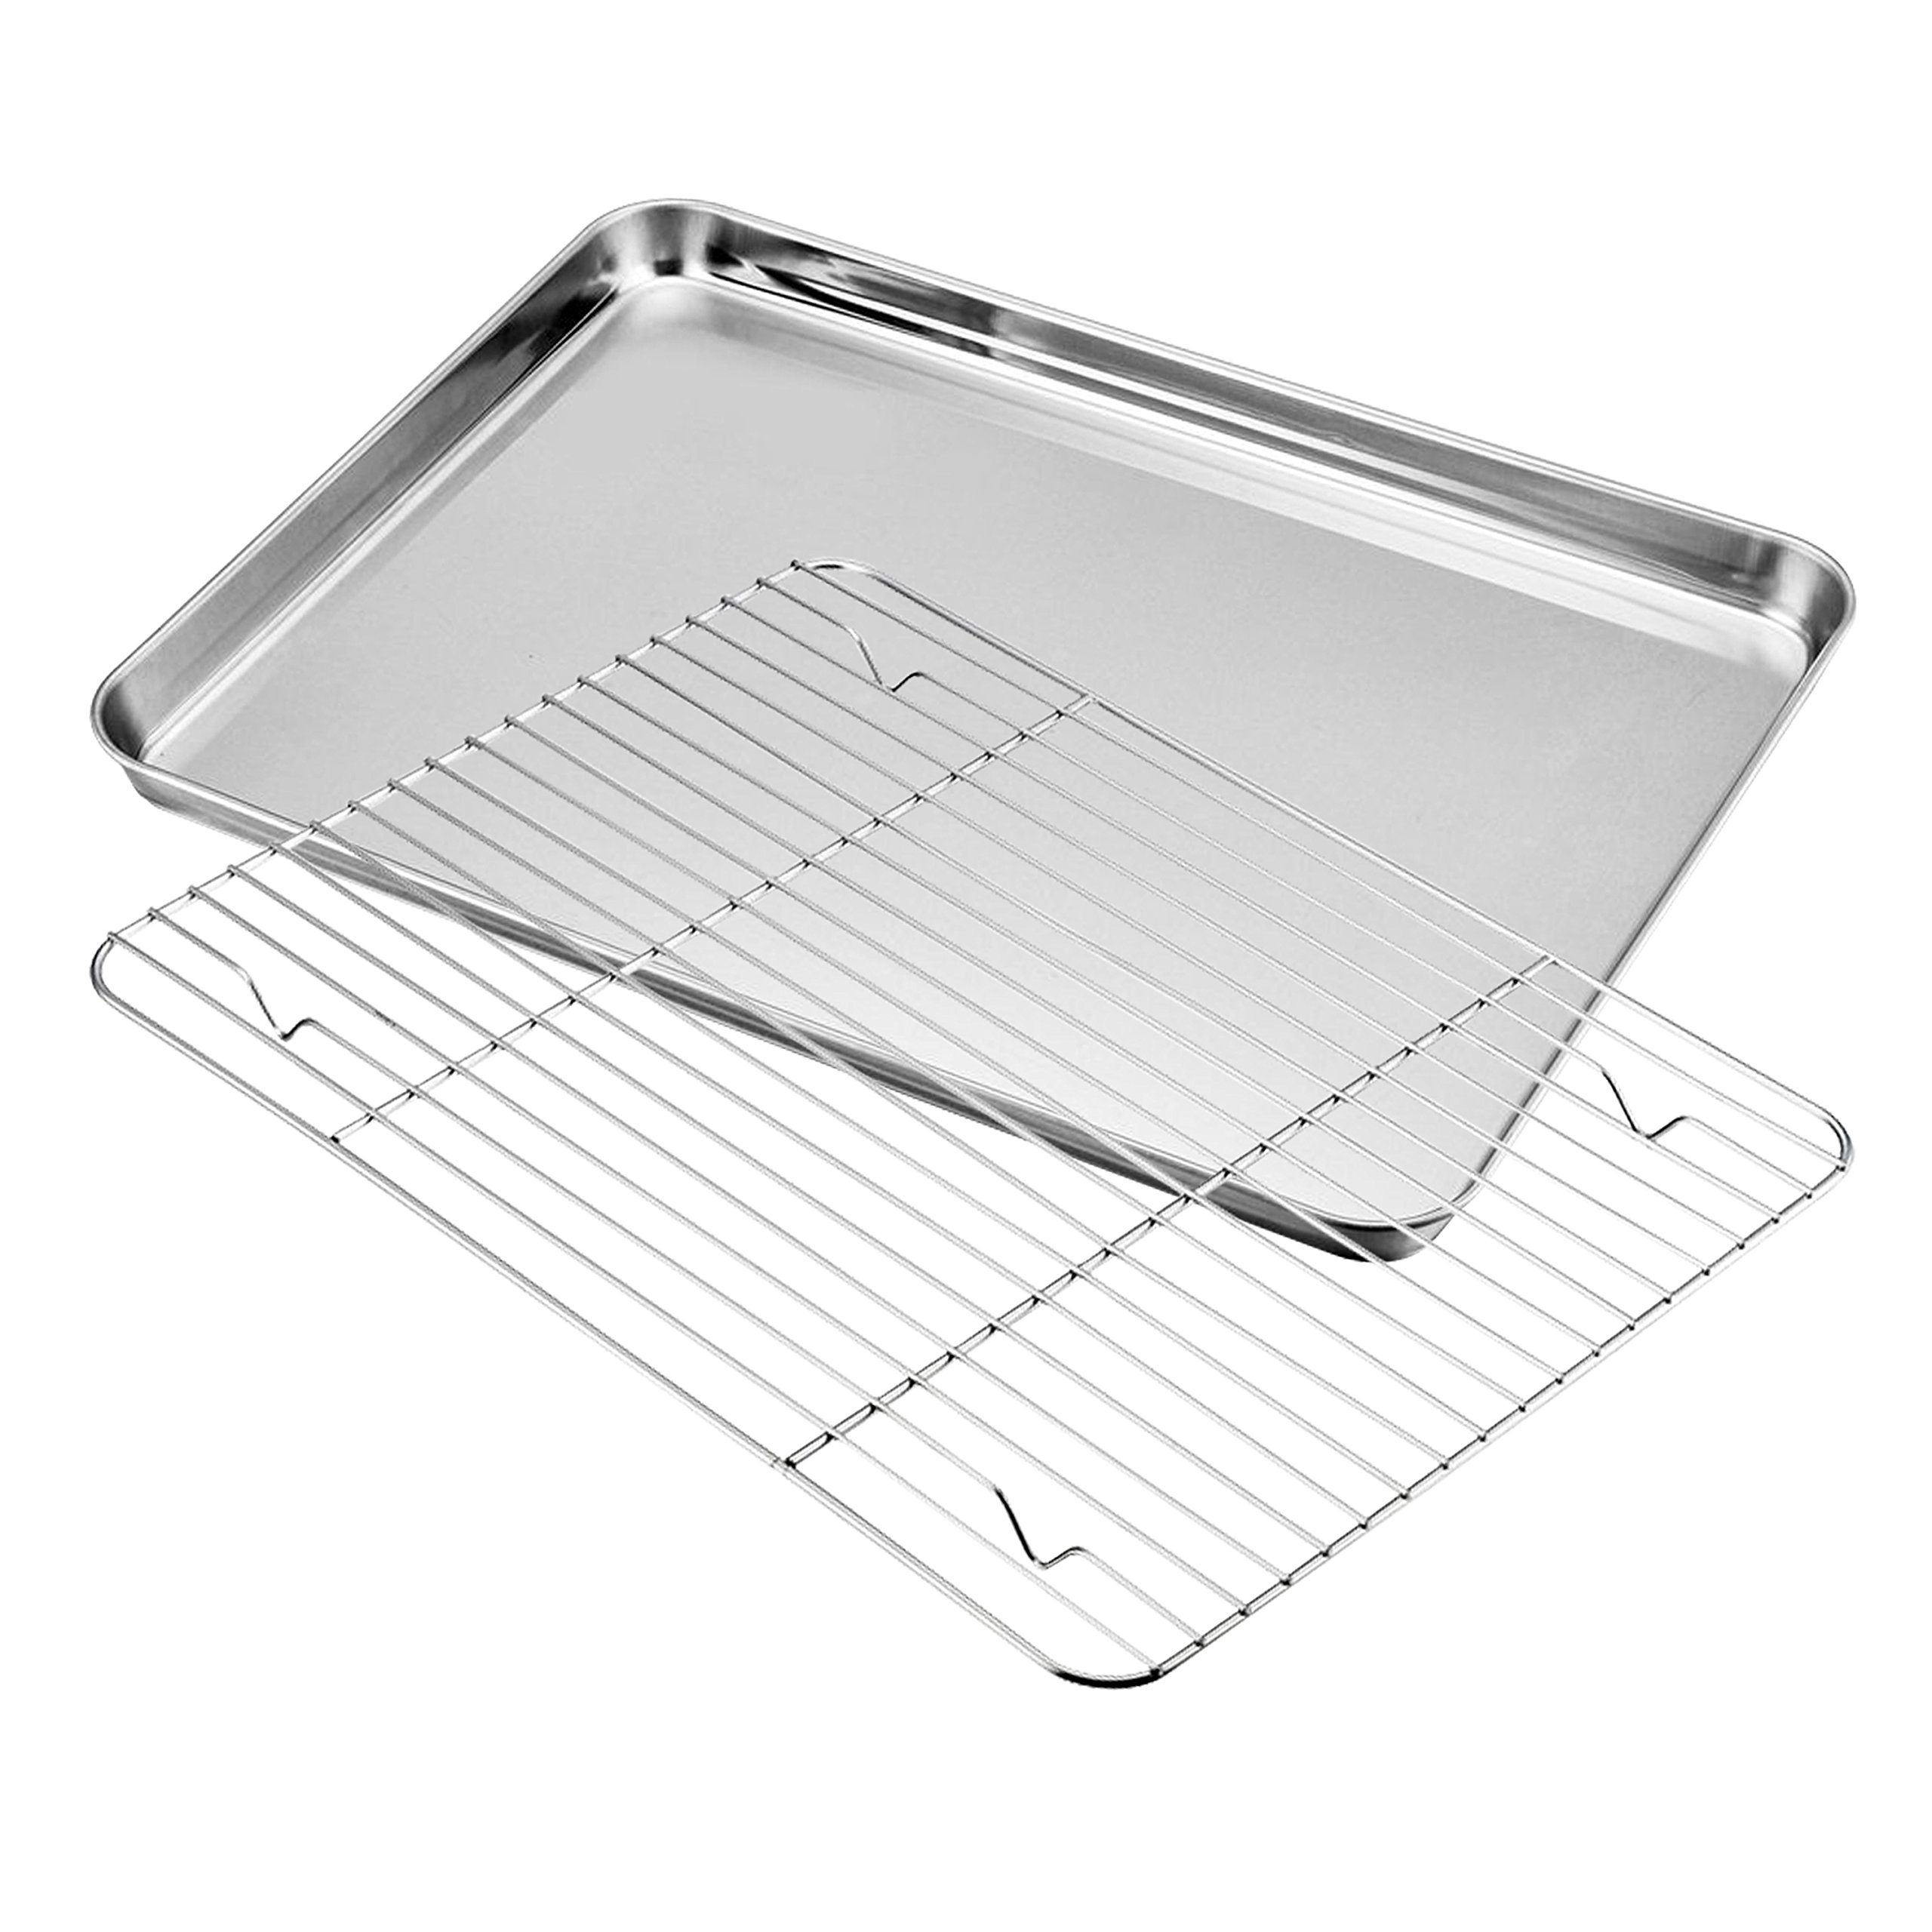 Mike pups Baking Sheets Rack Set, Cookie pan Nonstick Cooling Rack & Cookie Sheets Rectangle Size 10 x 8 x 1 inch,Stainless Steel & Non Toxic & Healthy,Superior Mirror Finish & Easy Clean (1081)